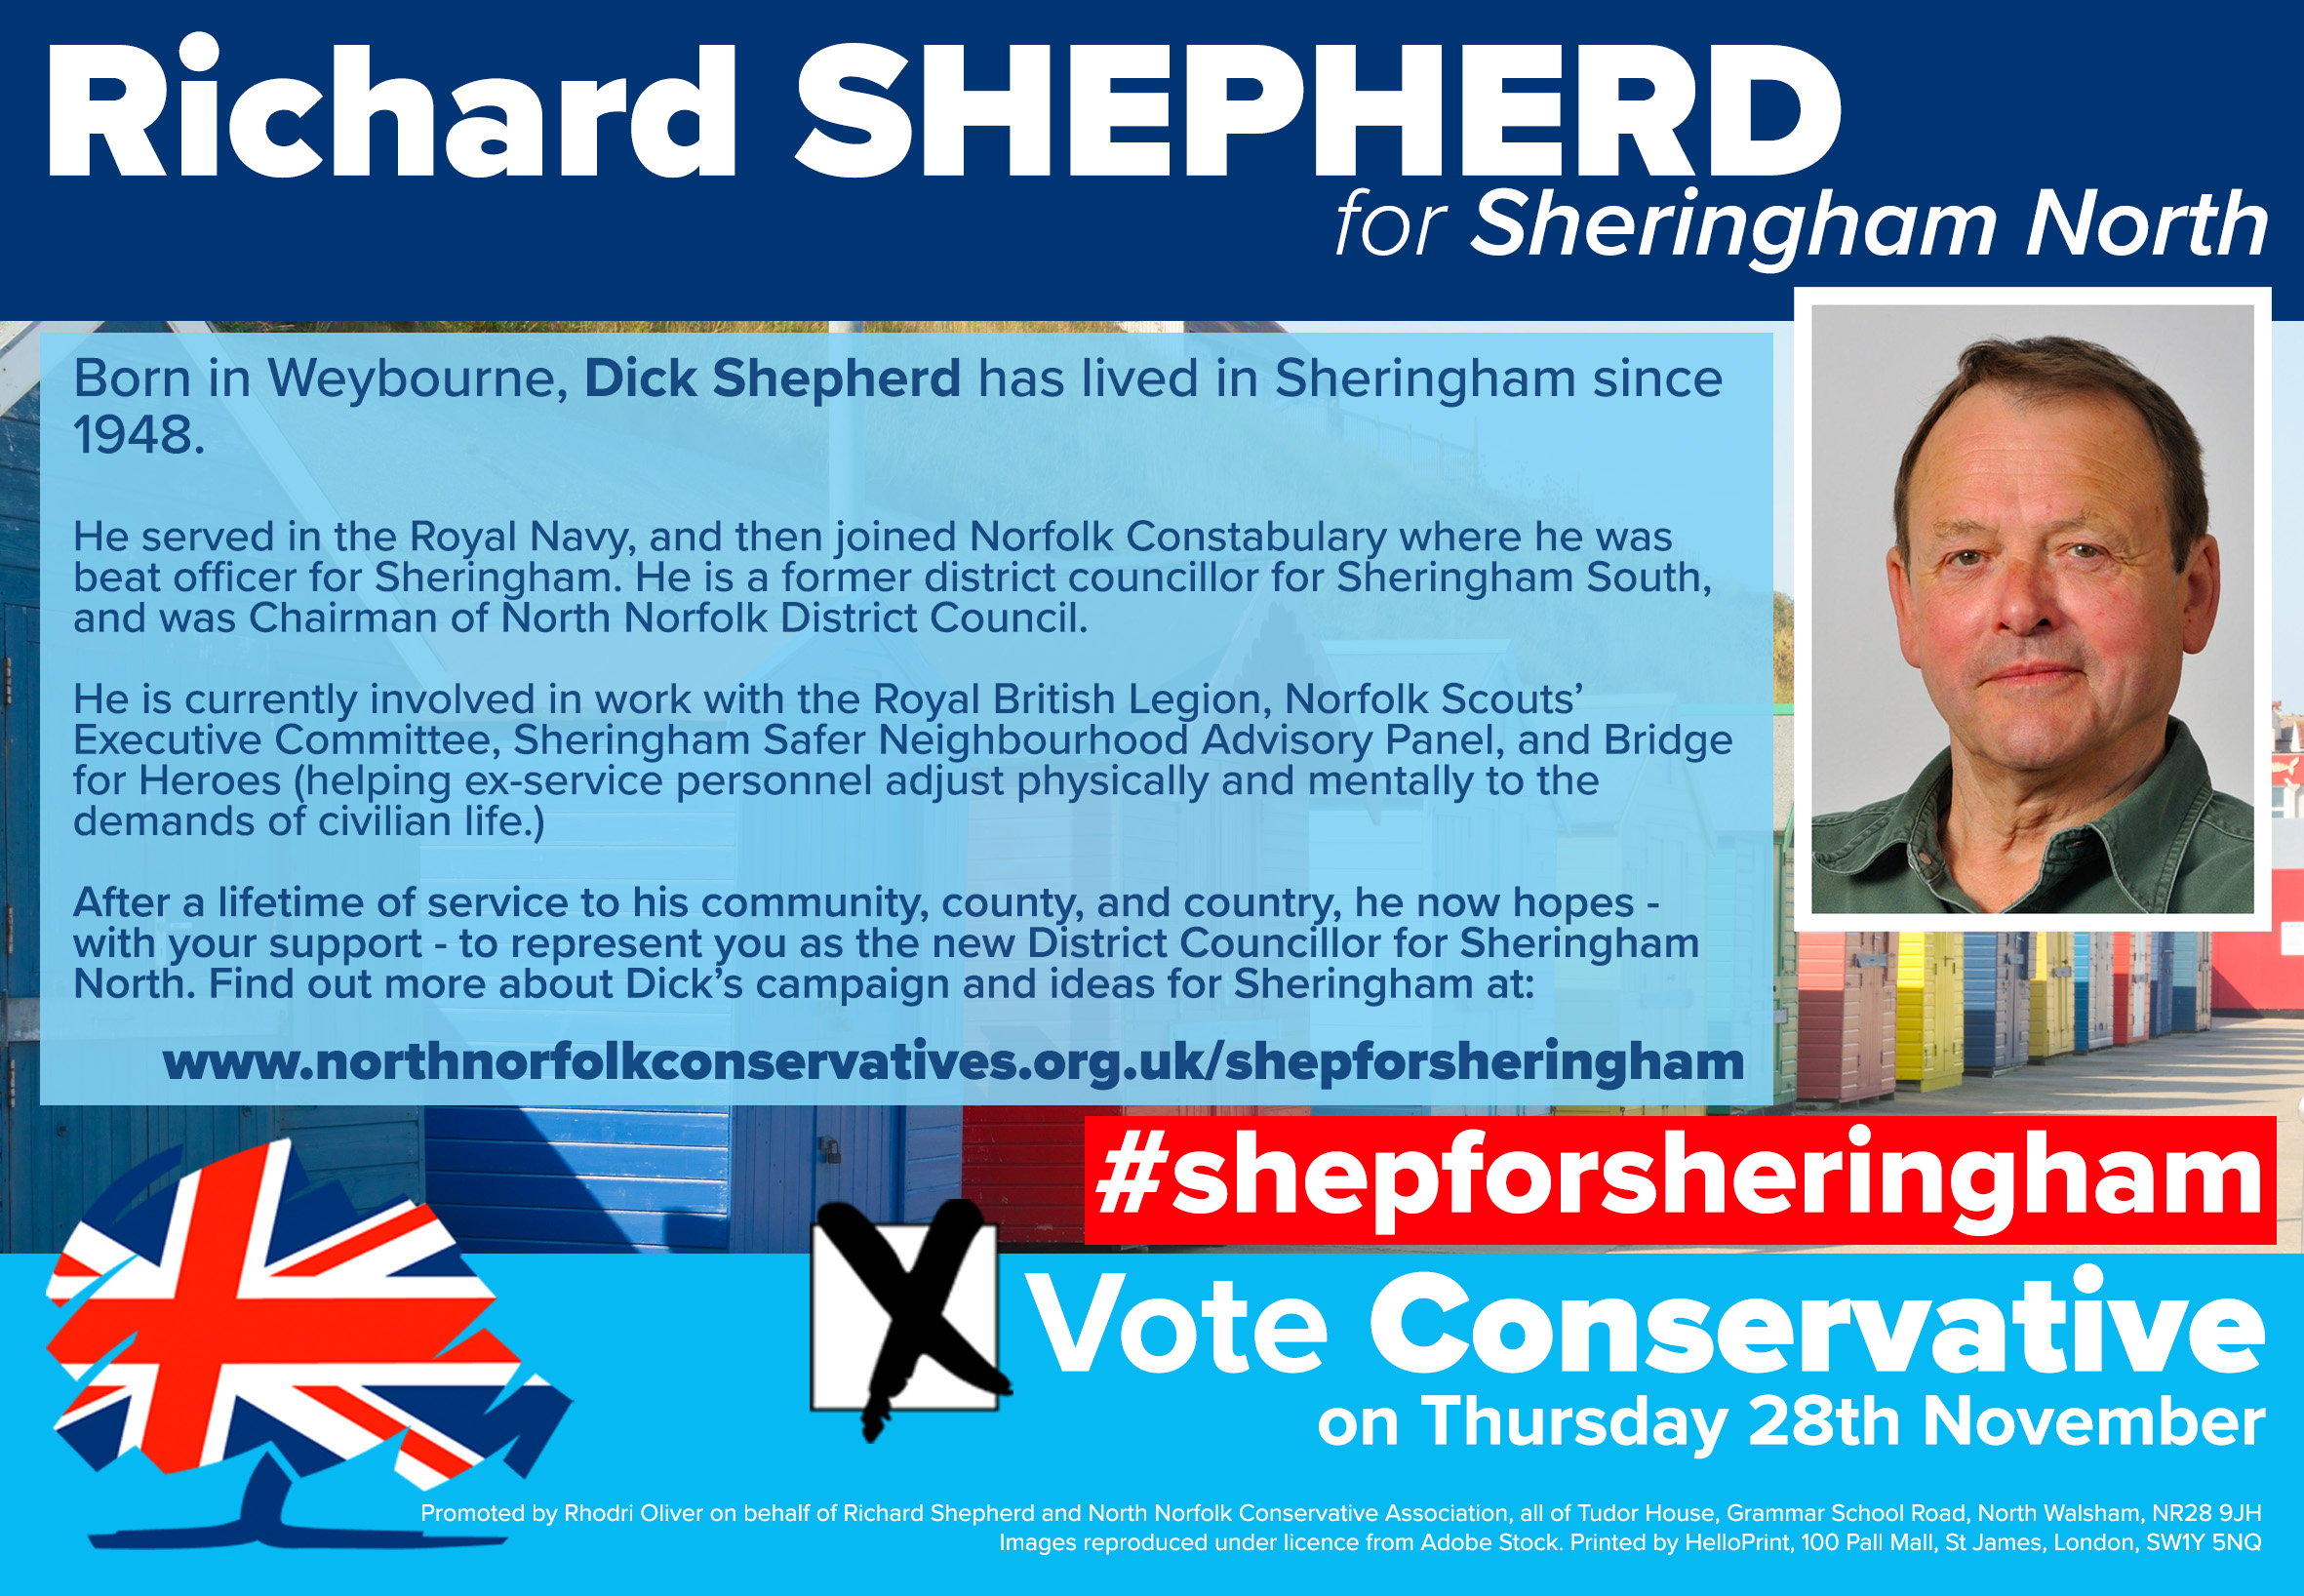 Richard Shepherd for Sheringham North